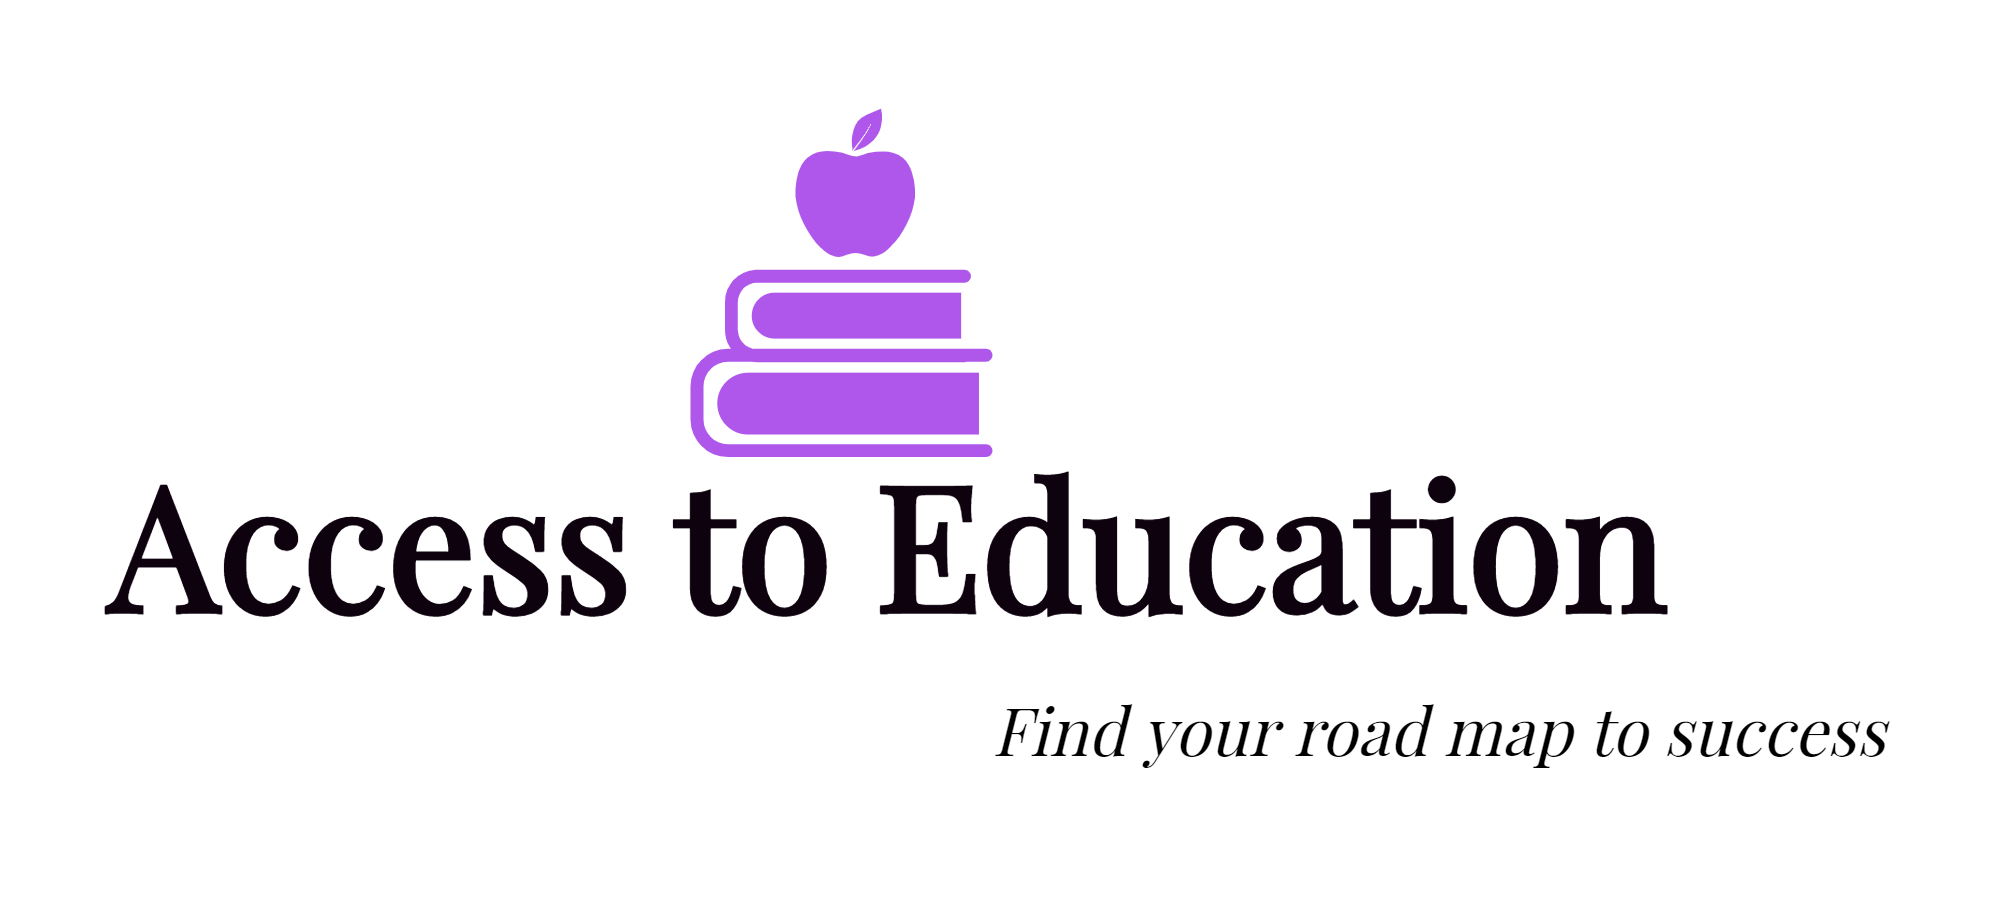 Delphine Rule is an educator and the founder and owner of Access to Education, an educational consulting business that supports families in finding their roadmaps to success.